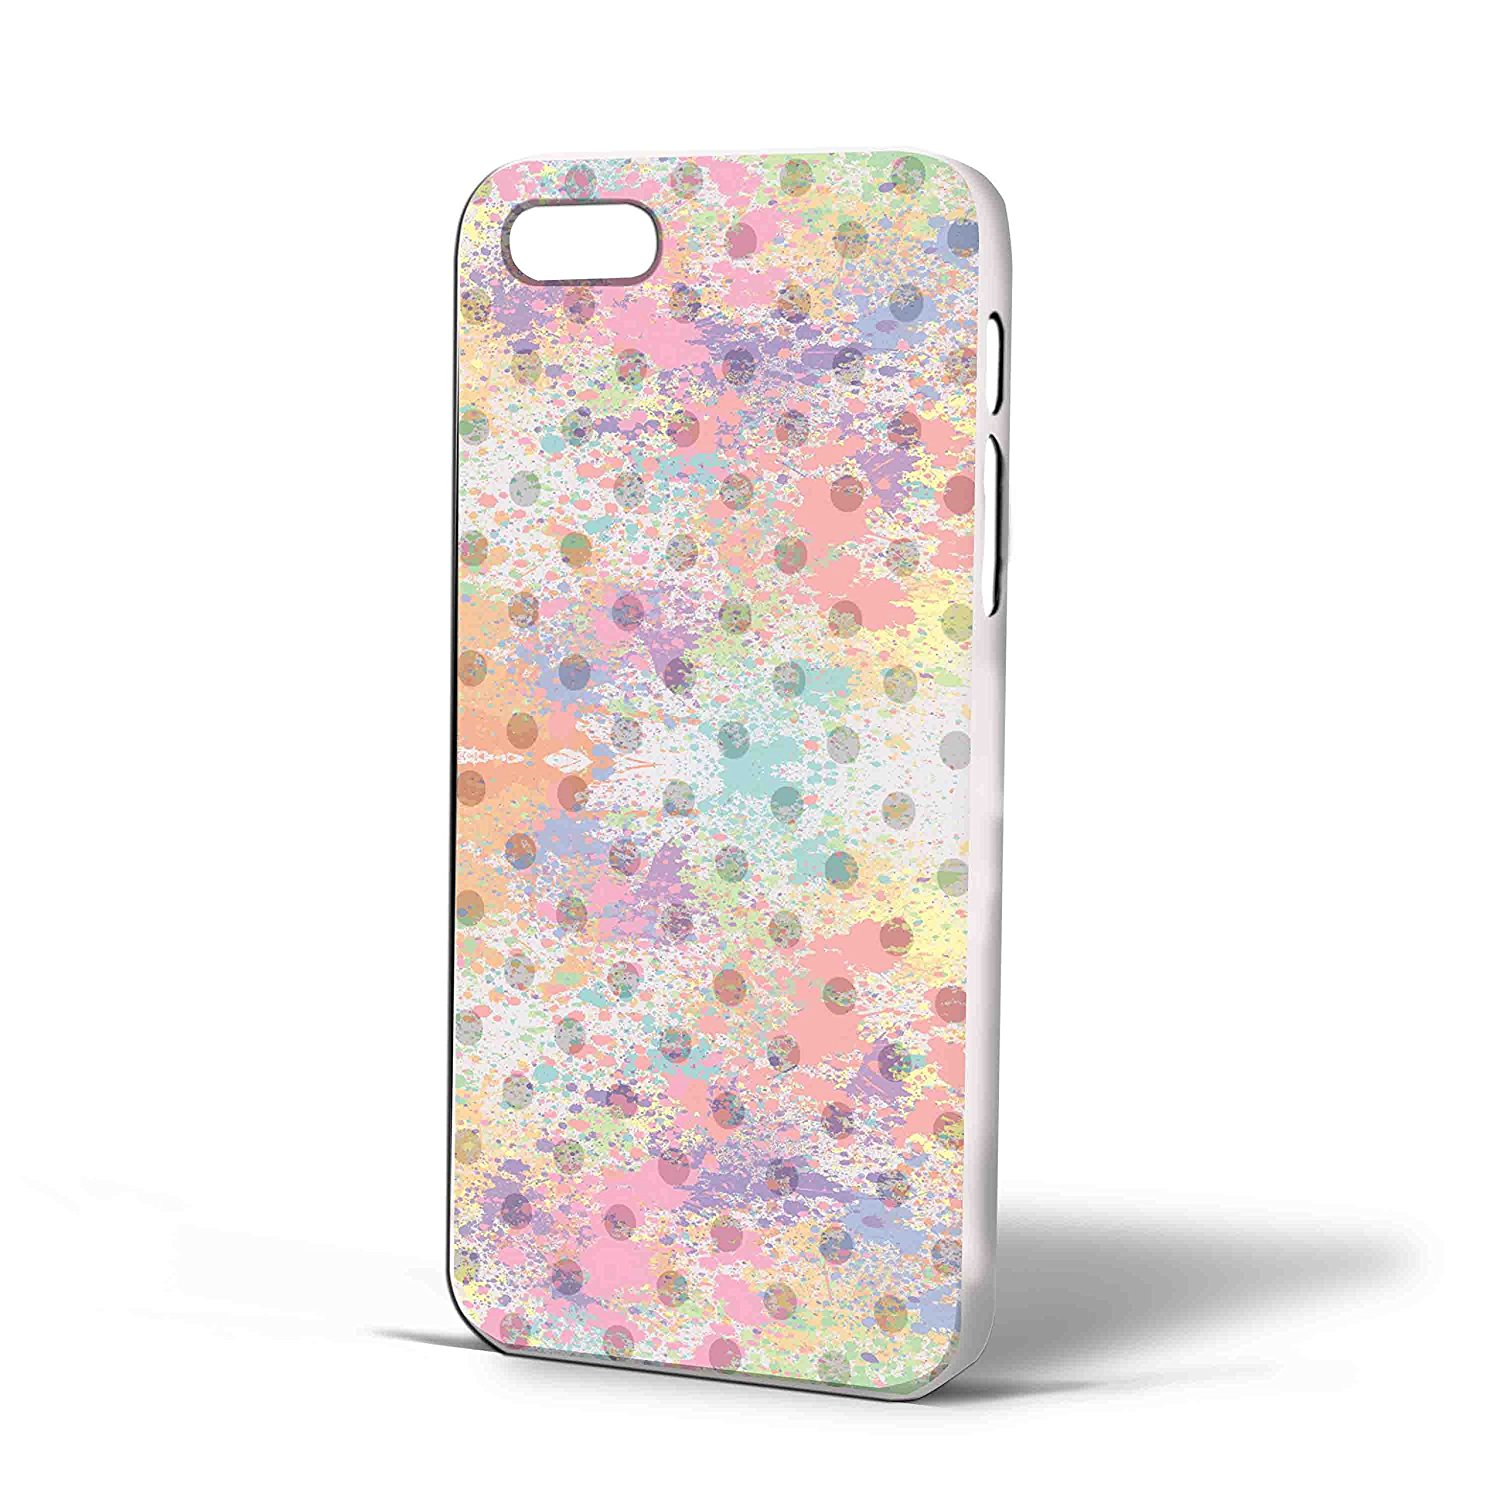 Ganma Polkadot - Pastel Case For iPhone Case (Case For iPhone 5C White)